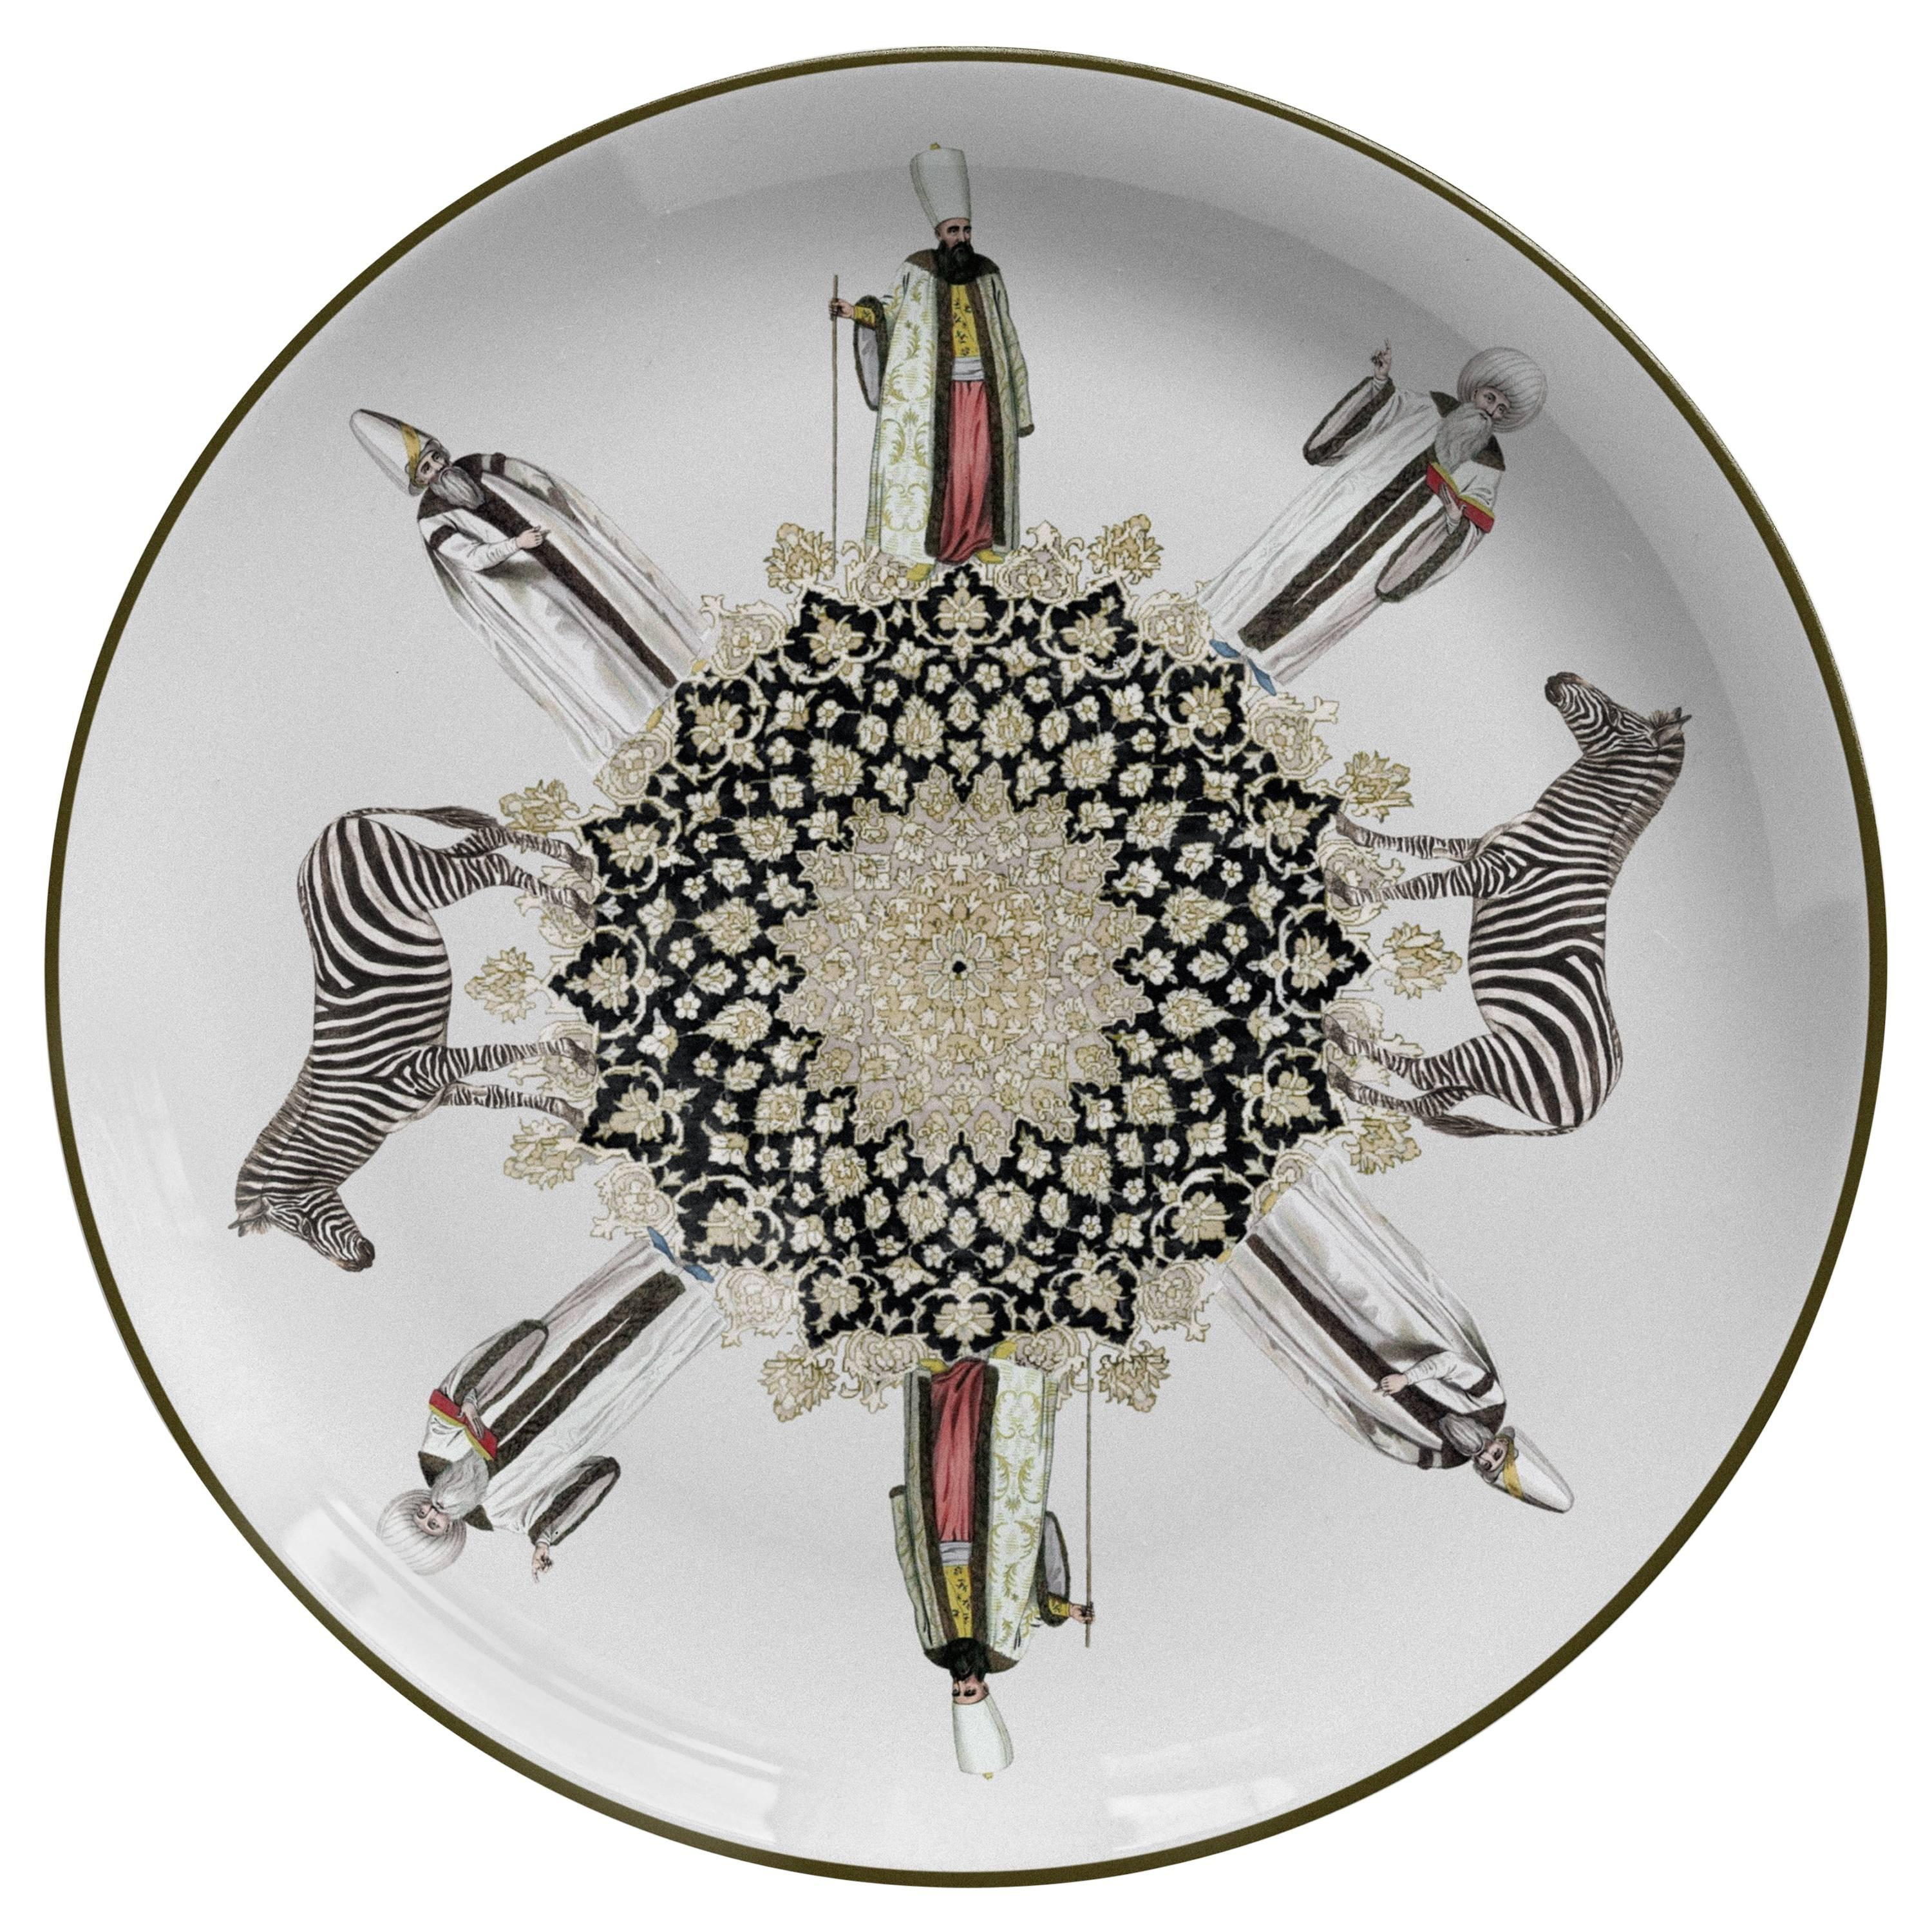 Sacerdoti Porcelain Dinner Plate by Vito Nesta for Les Ottomans, Made in Italy